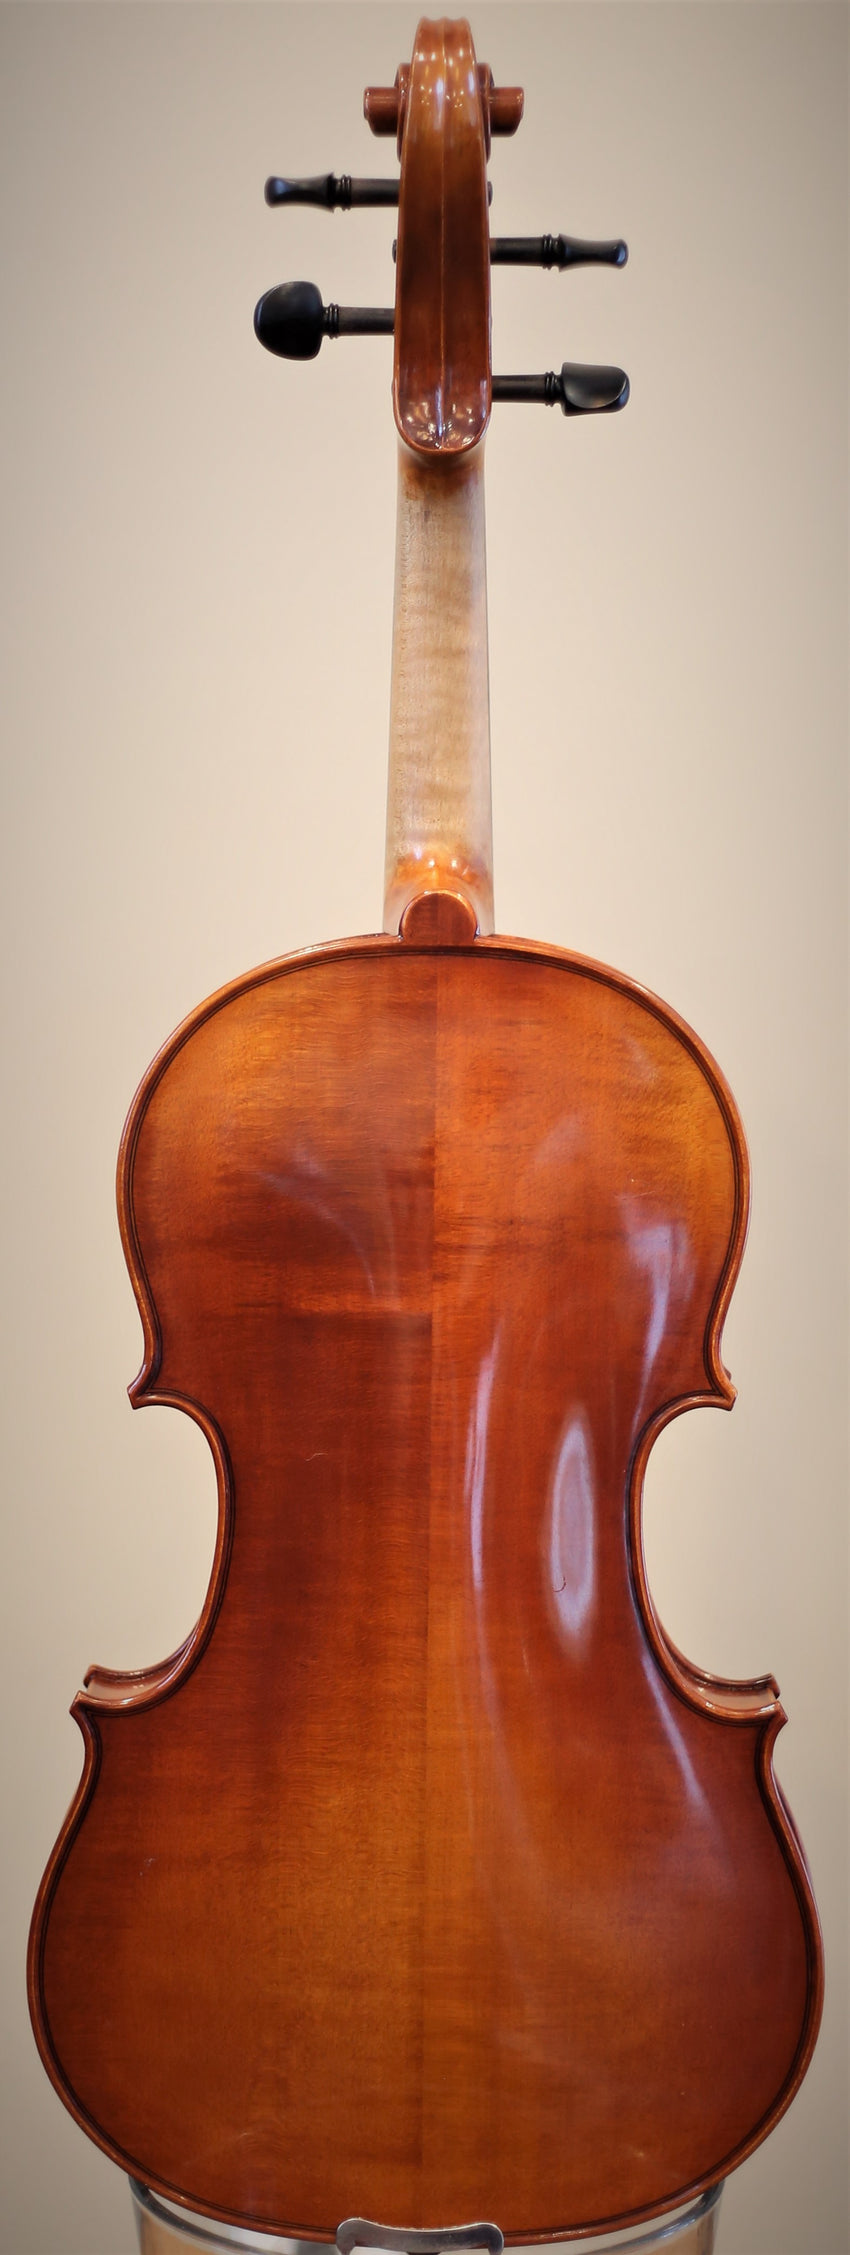 Sam's Strings Viola - Introit Model